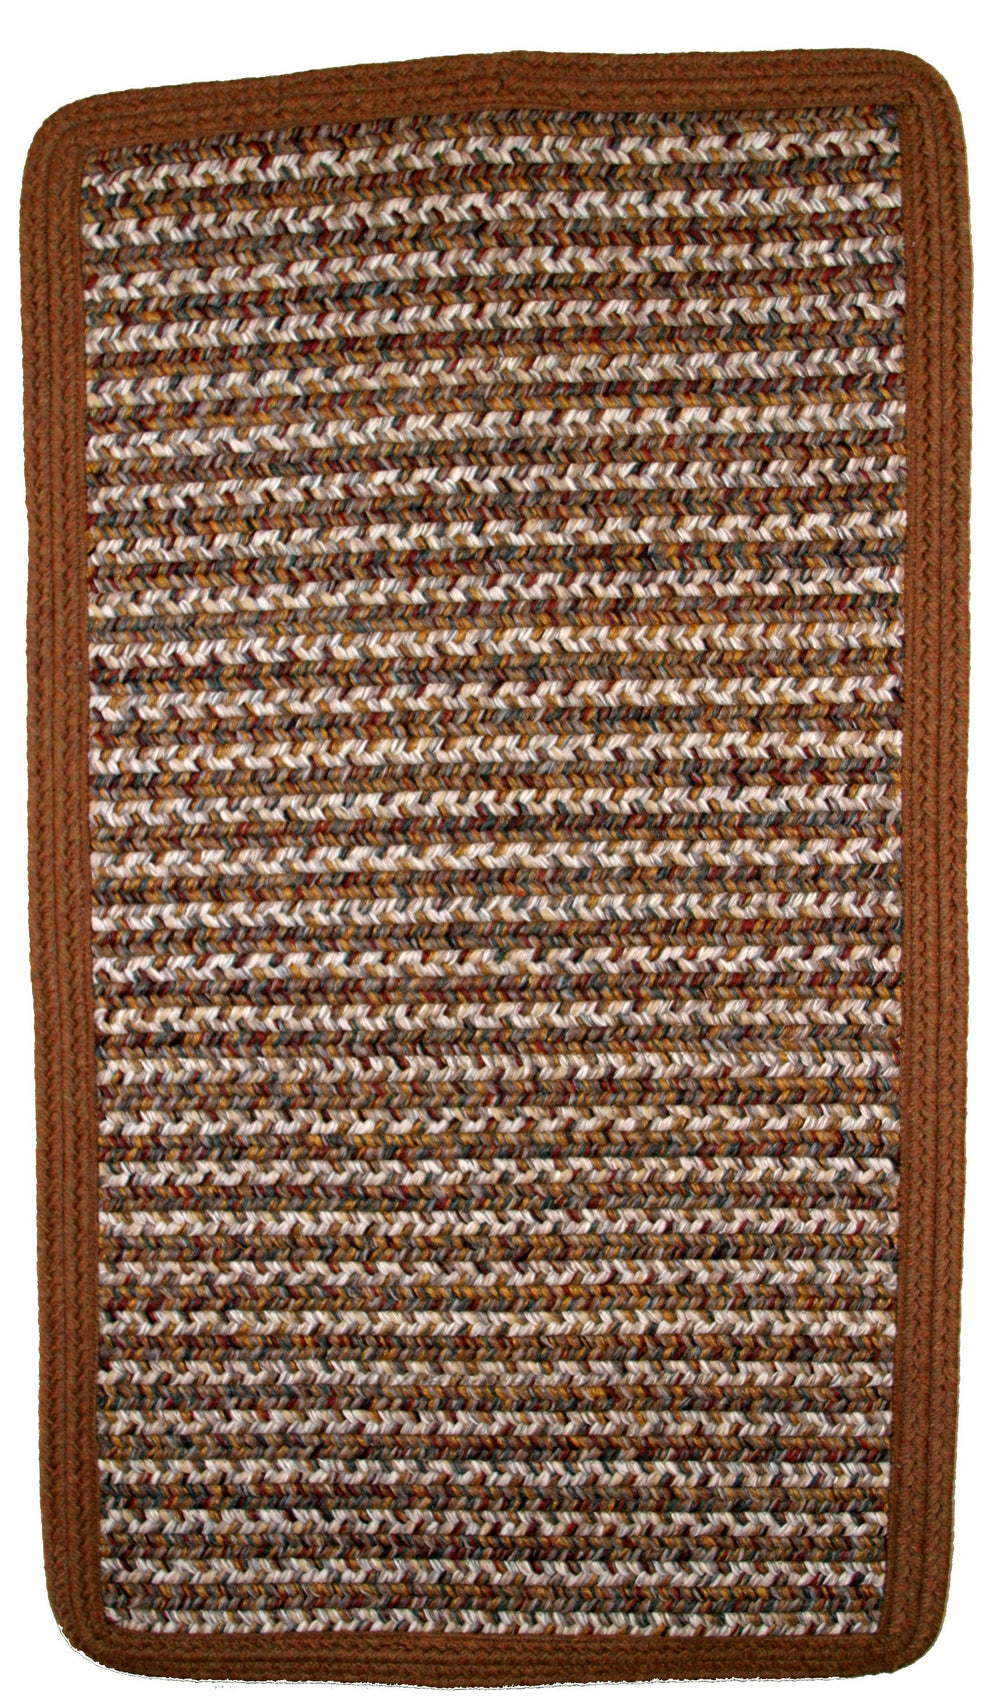 Thorndike Mills Beantown Spice Area Rug